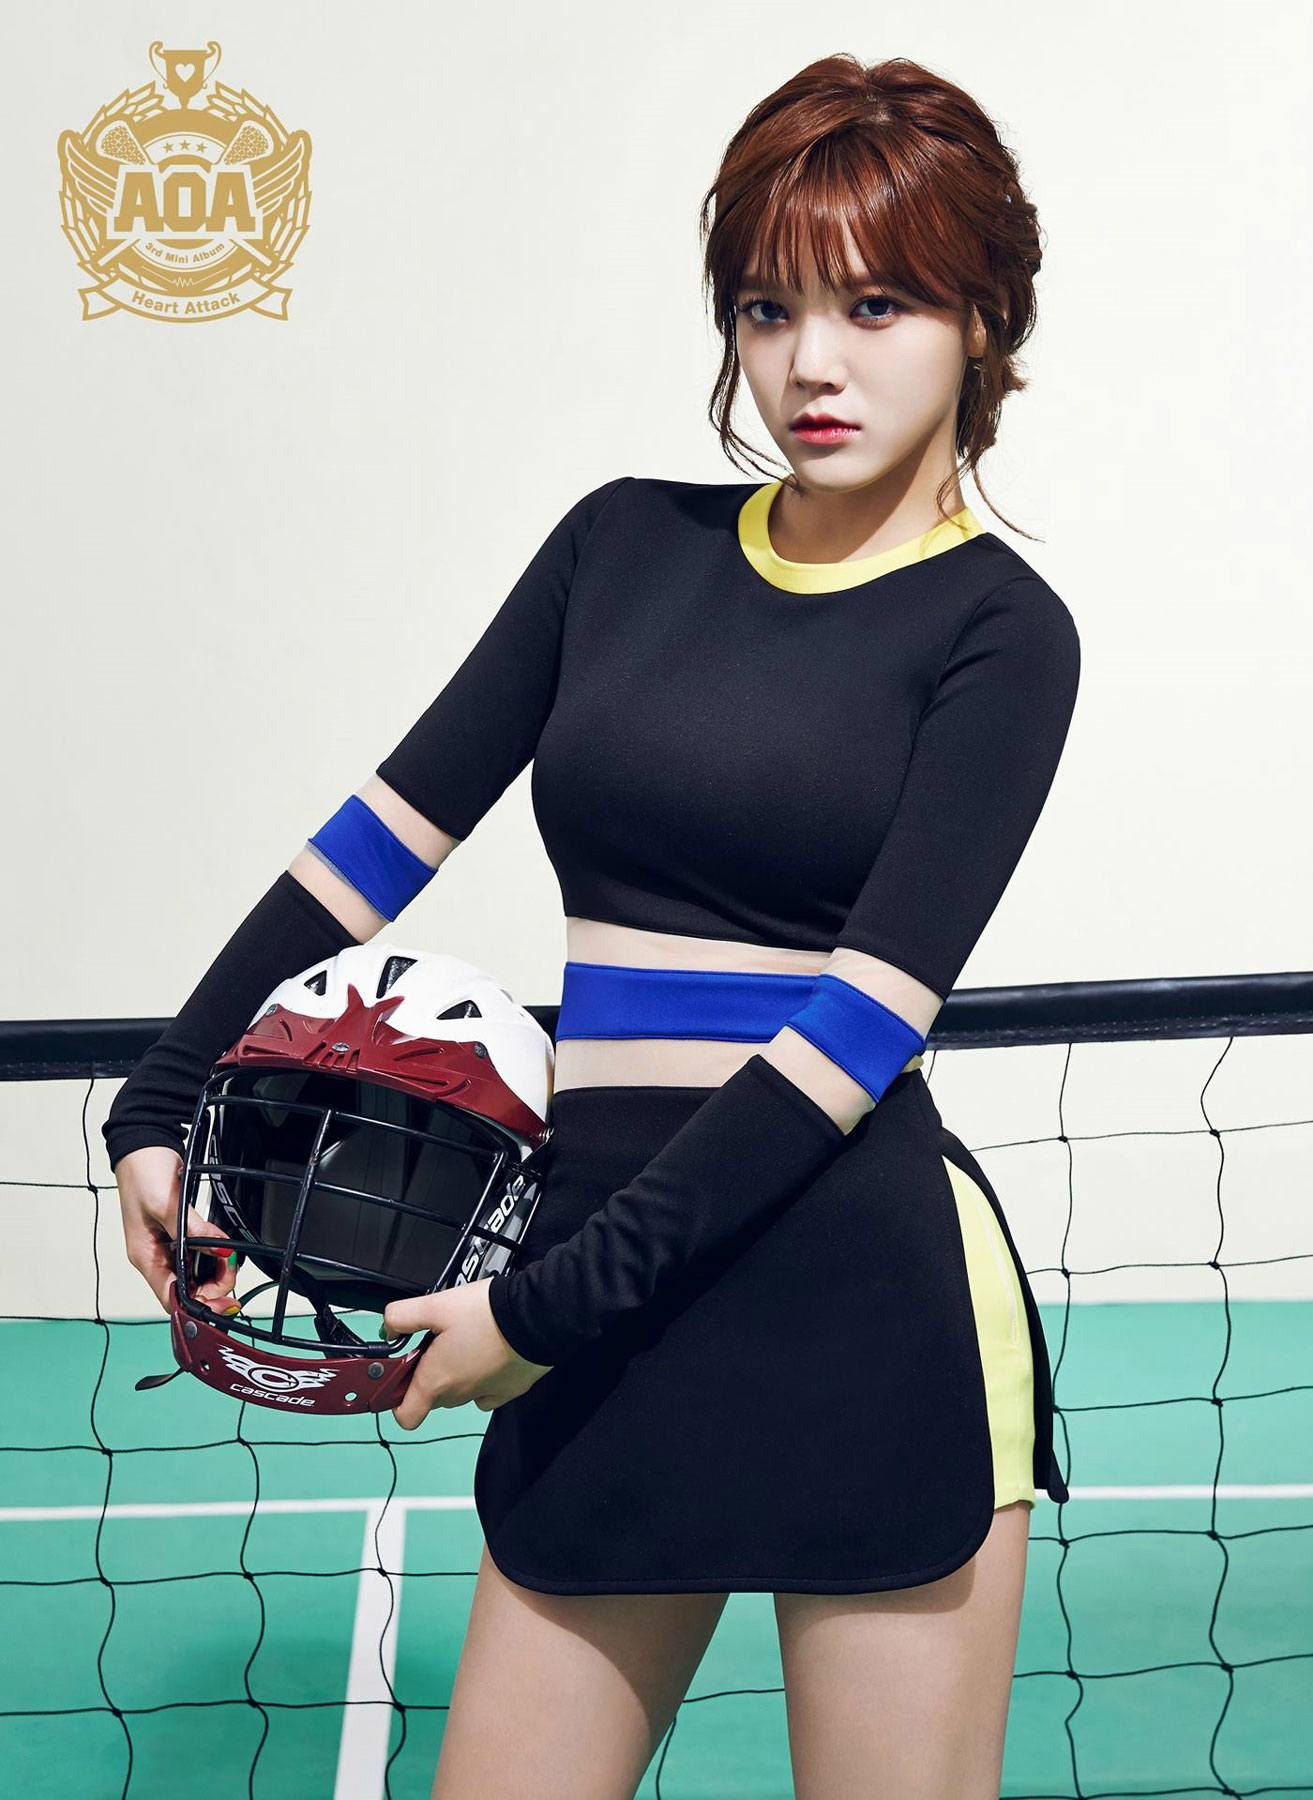 AOA Jimin Heart Attack Korean mini album